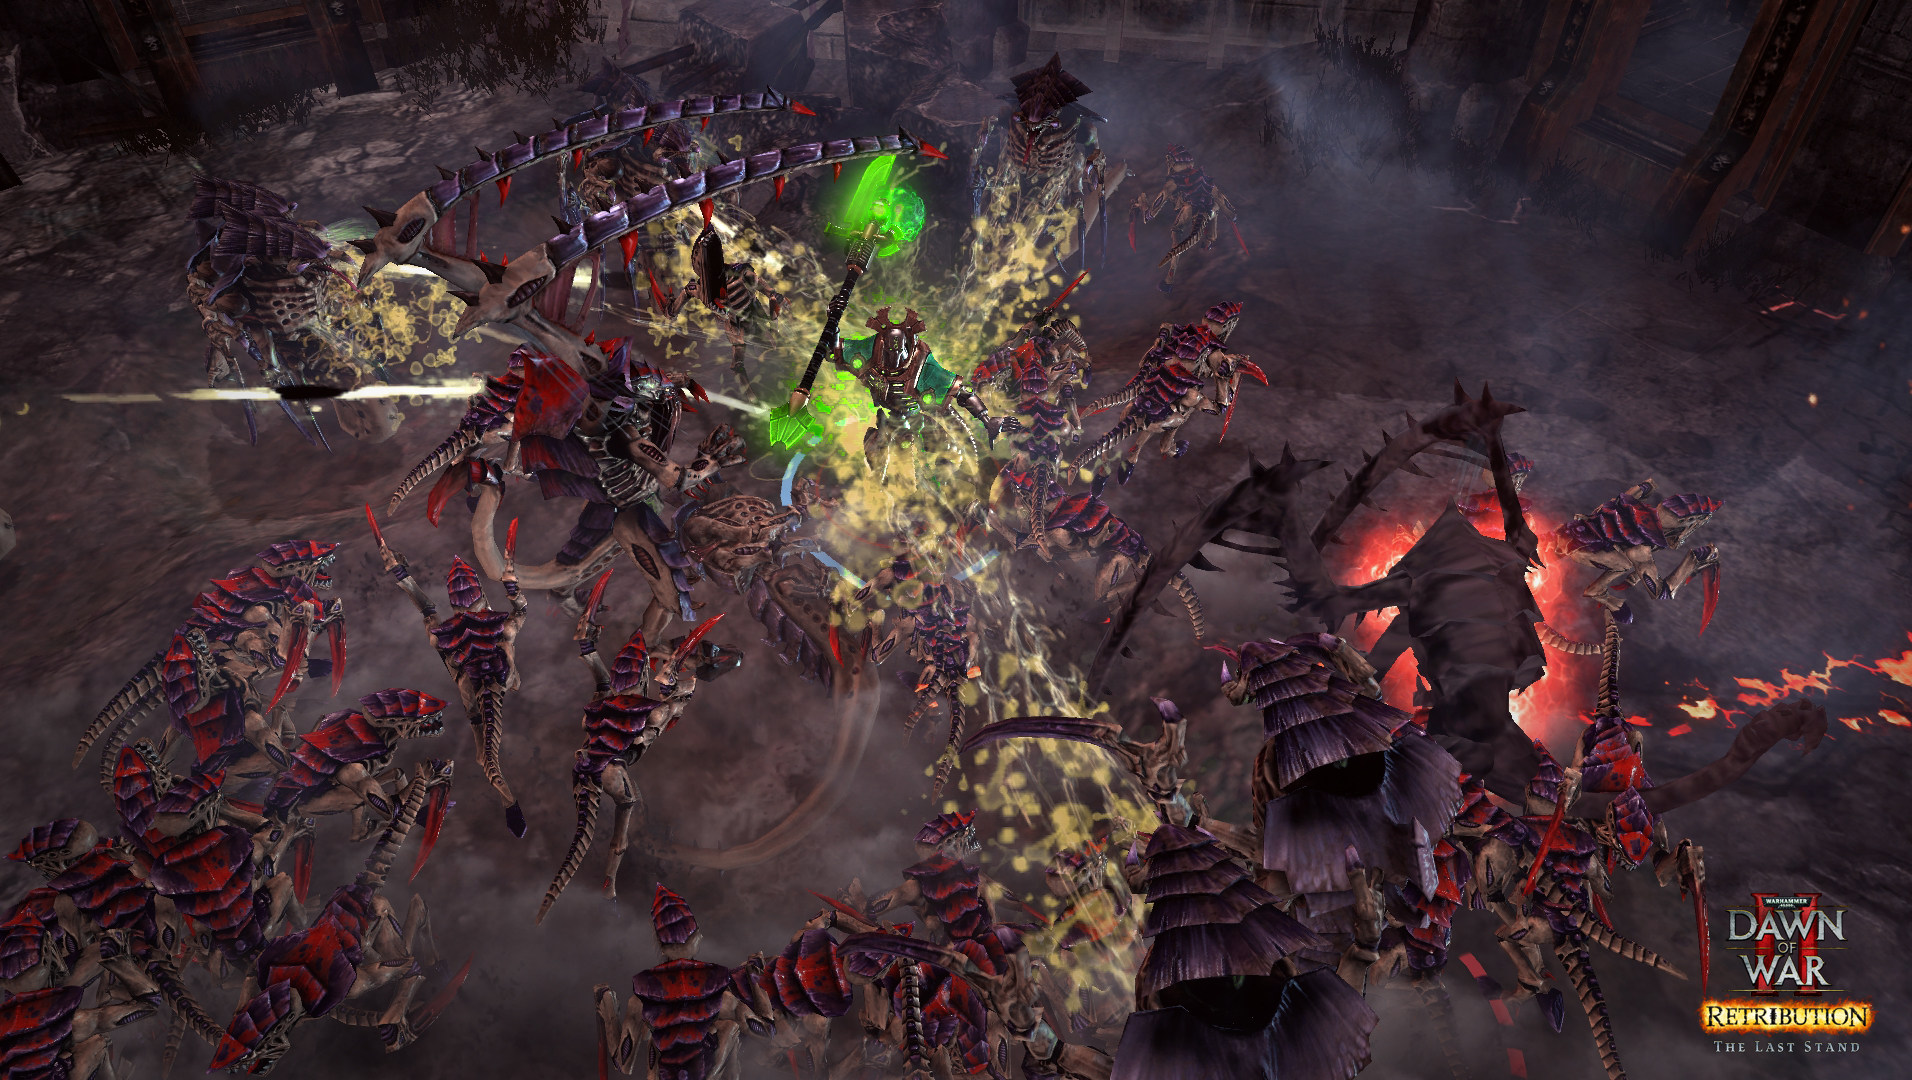 Warhammer 40,000: Dawn of War II - Retribution - The Last Stand Necron Overlord screenshot